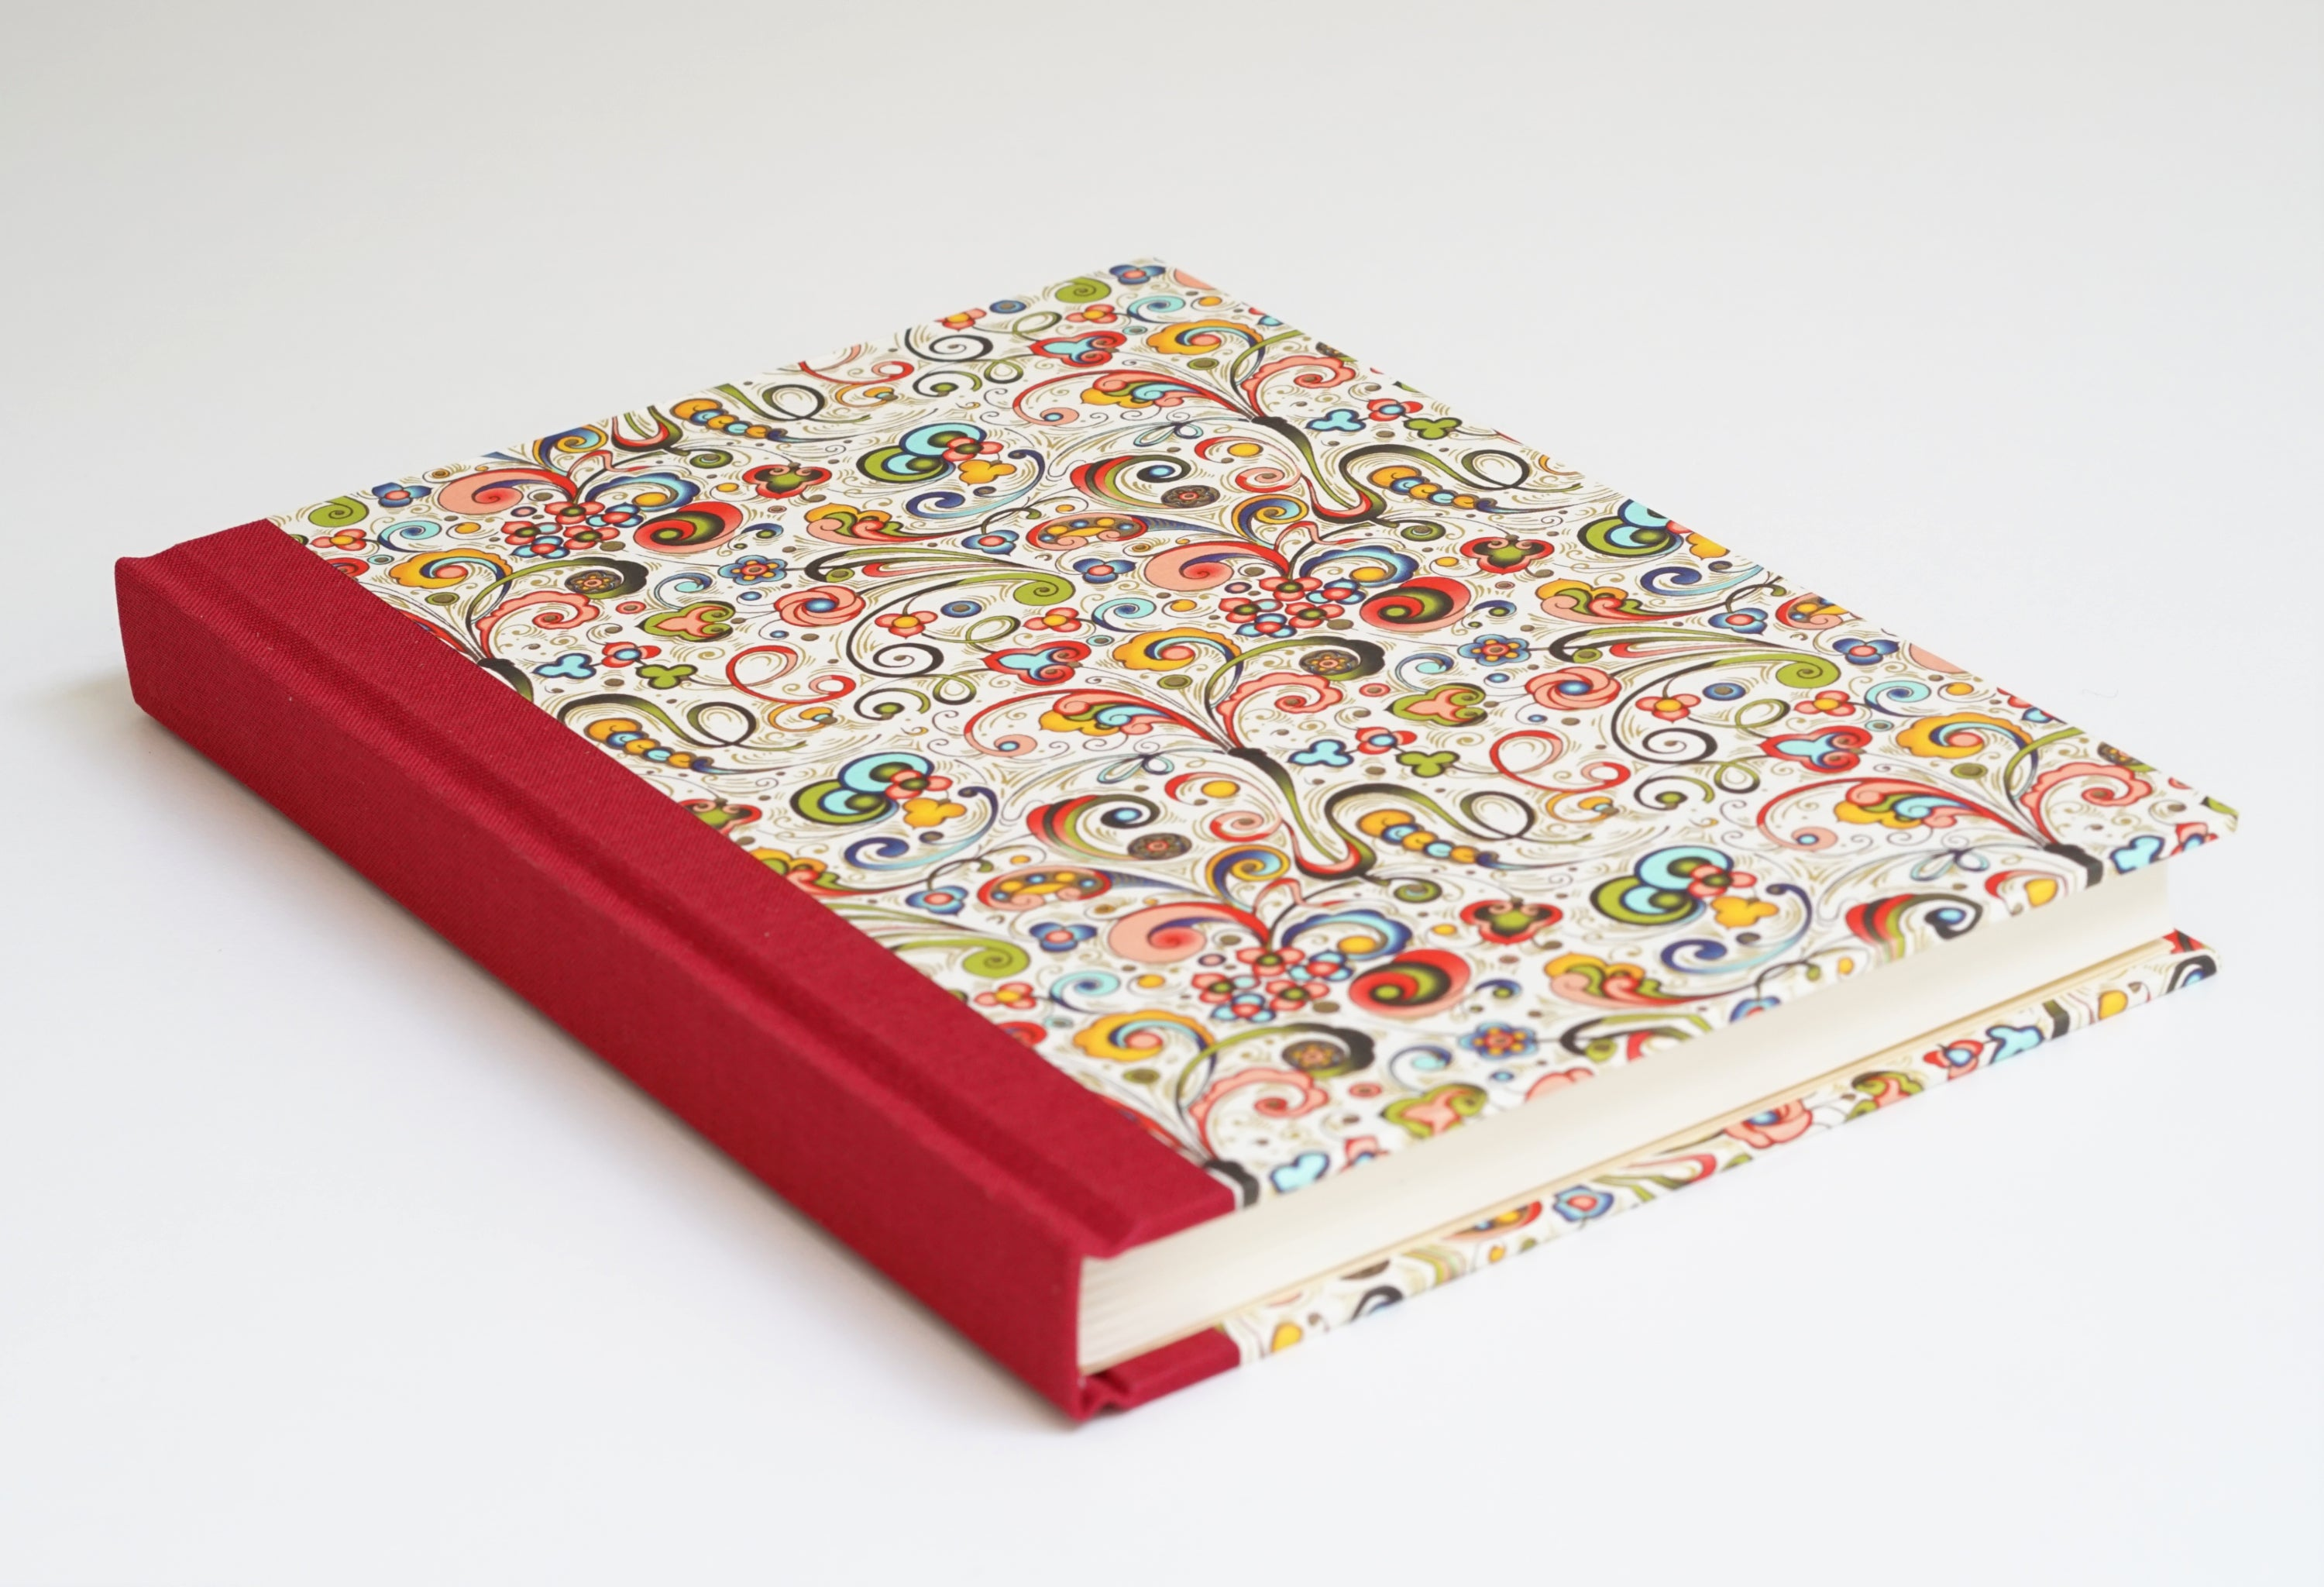 red spined notebook with colourful red floral pattern